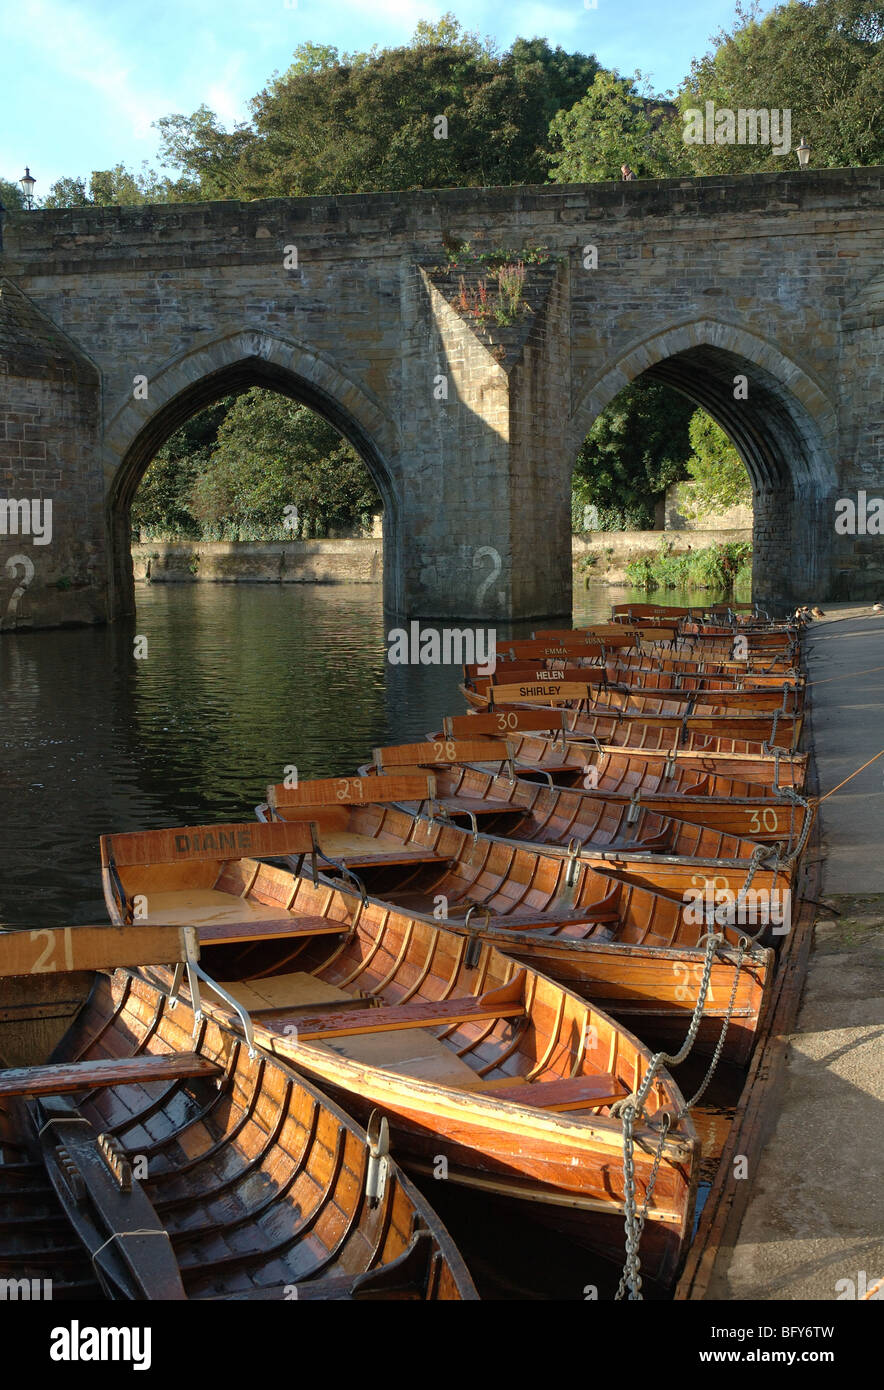 rowing boats moored on the River Wear and Elvet Bridge, Durham, County Durham, England, UK - Stock Image